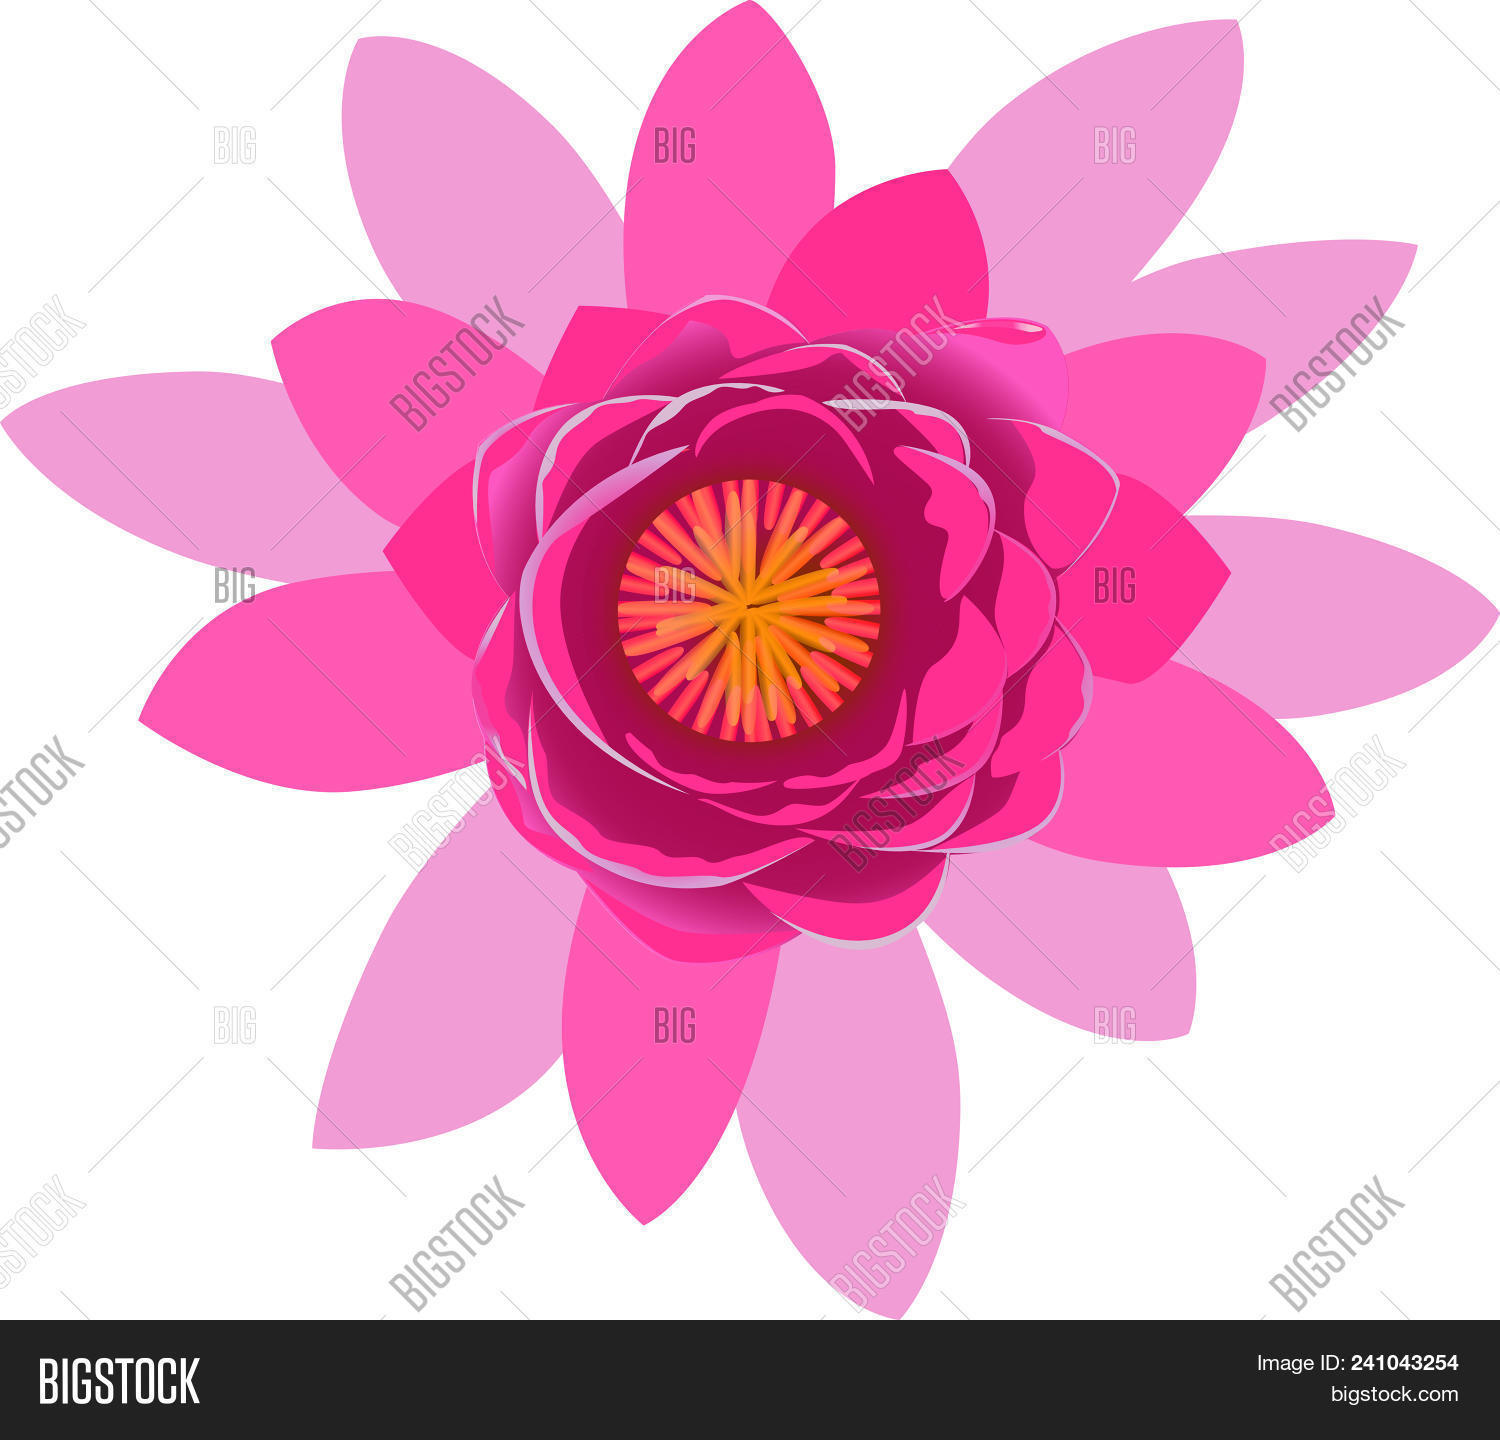 Beautiful pink lotus vector photo free trial bigstock beautiful pink lotus flower blossom isolated on white background colorful bloom nature vector illus izmirmasajfo